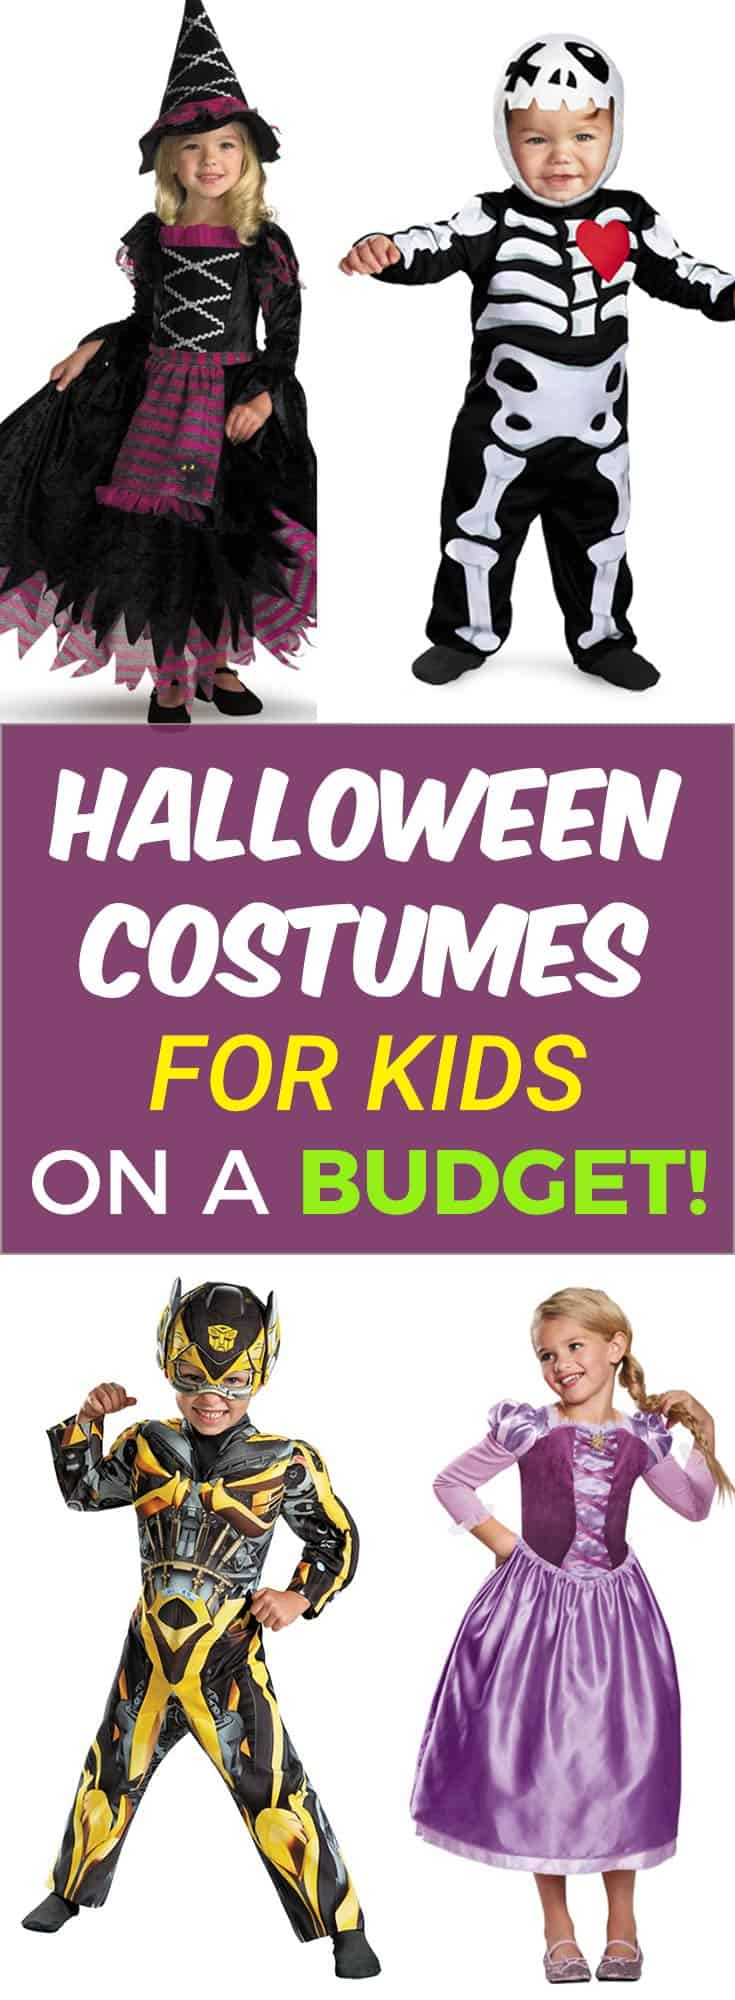 "Halloween Costumes for Kids on a Budget! With my #affiliate link you get an EXCLUSIVE OFFER! 25% off! Use code ""spooky25cj17""!"